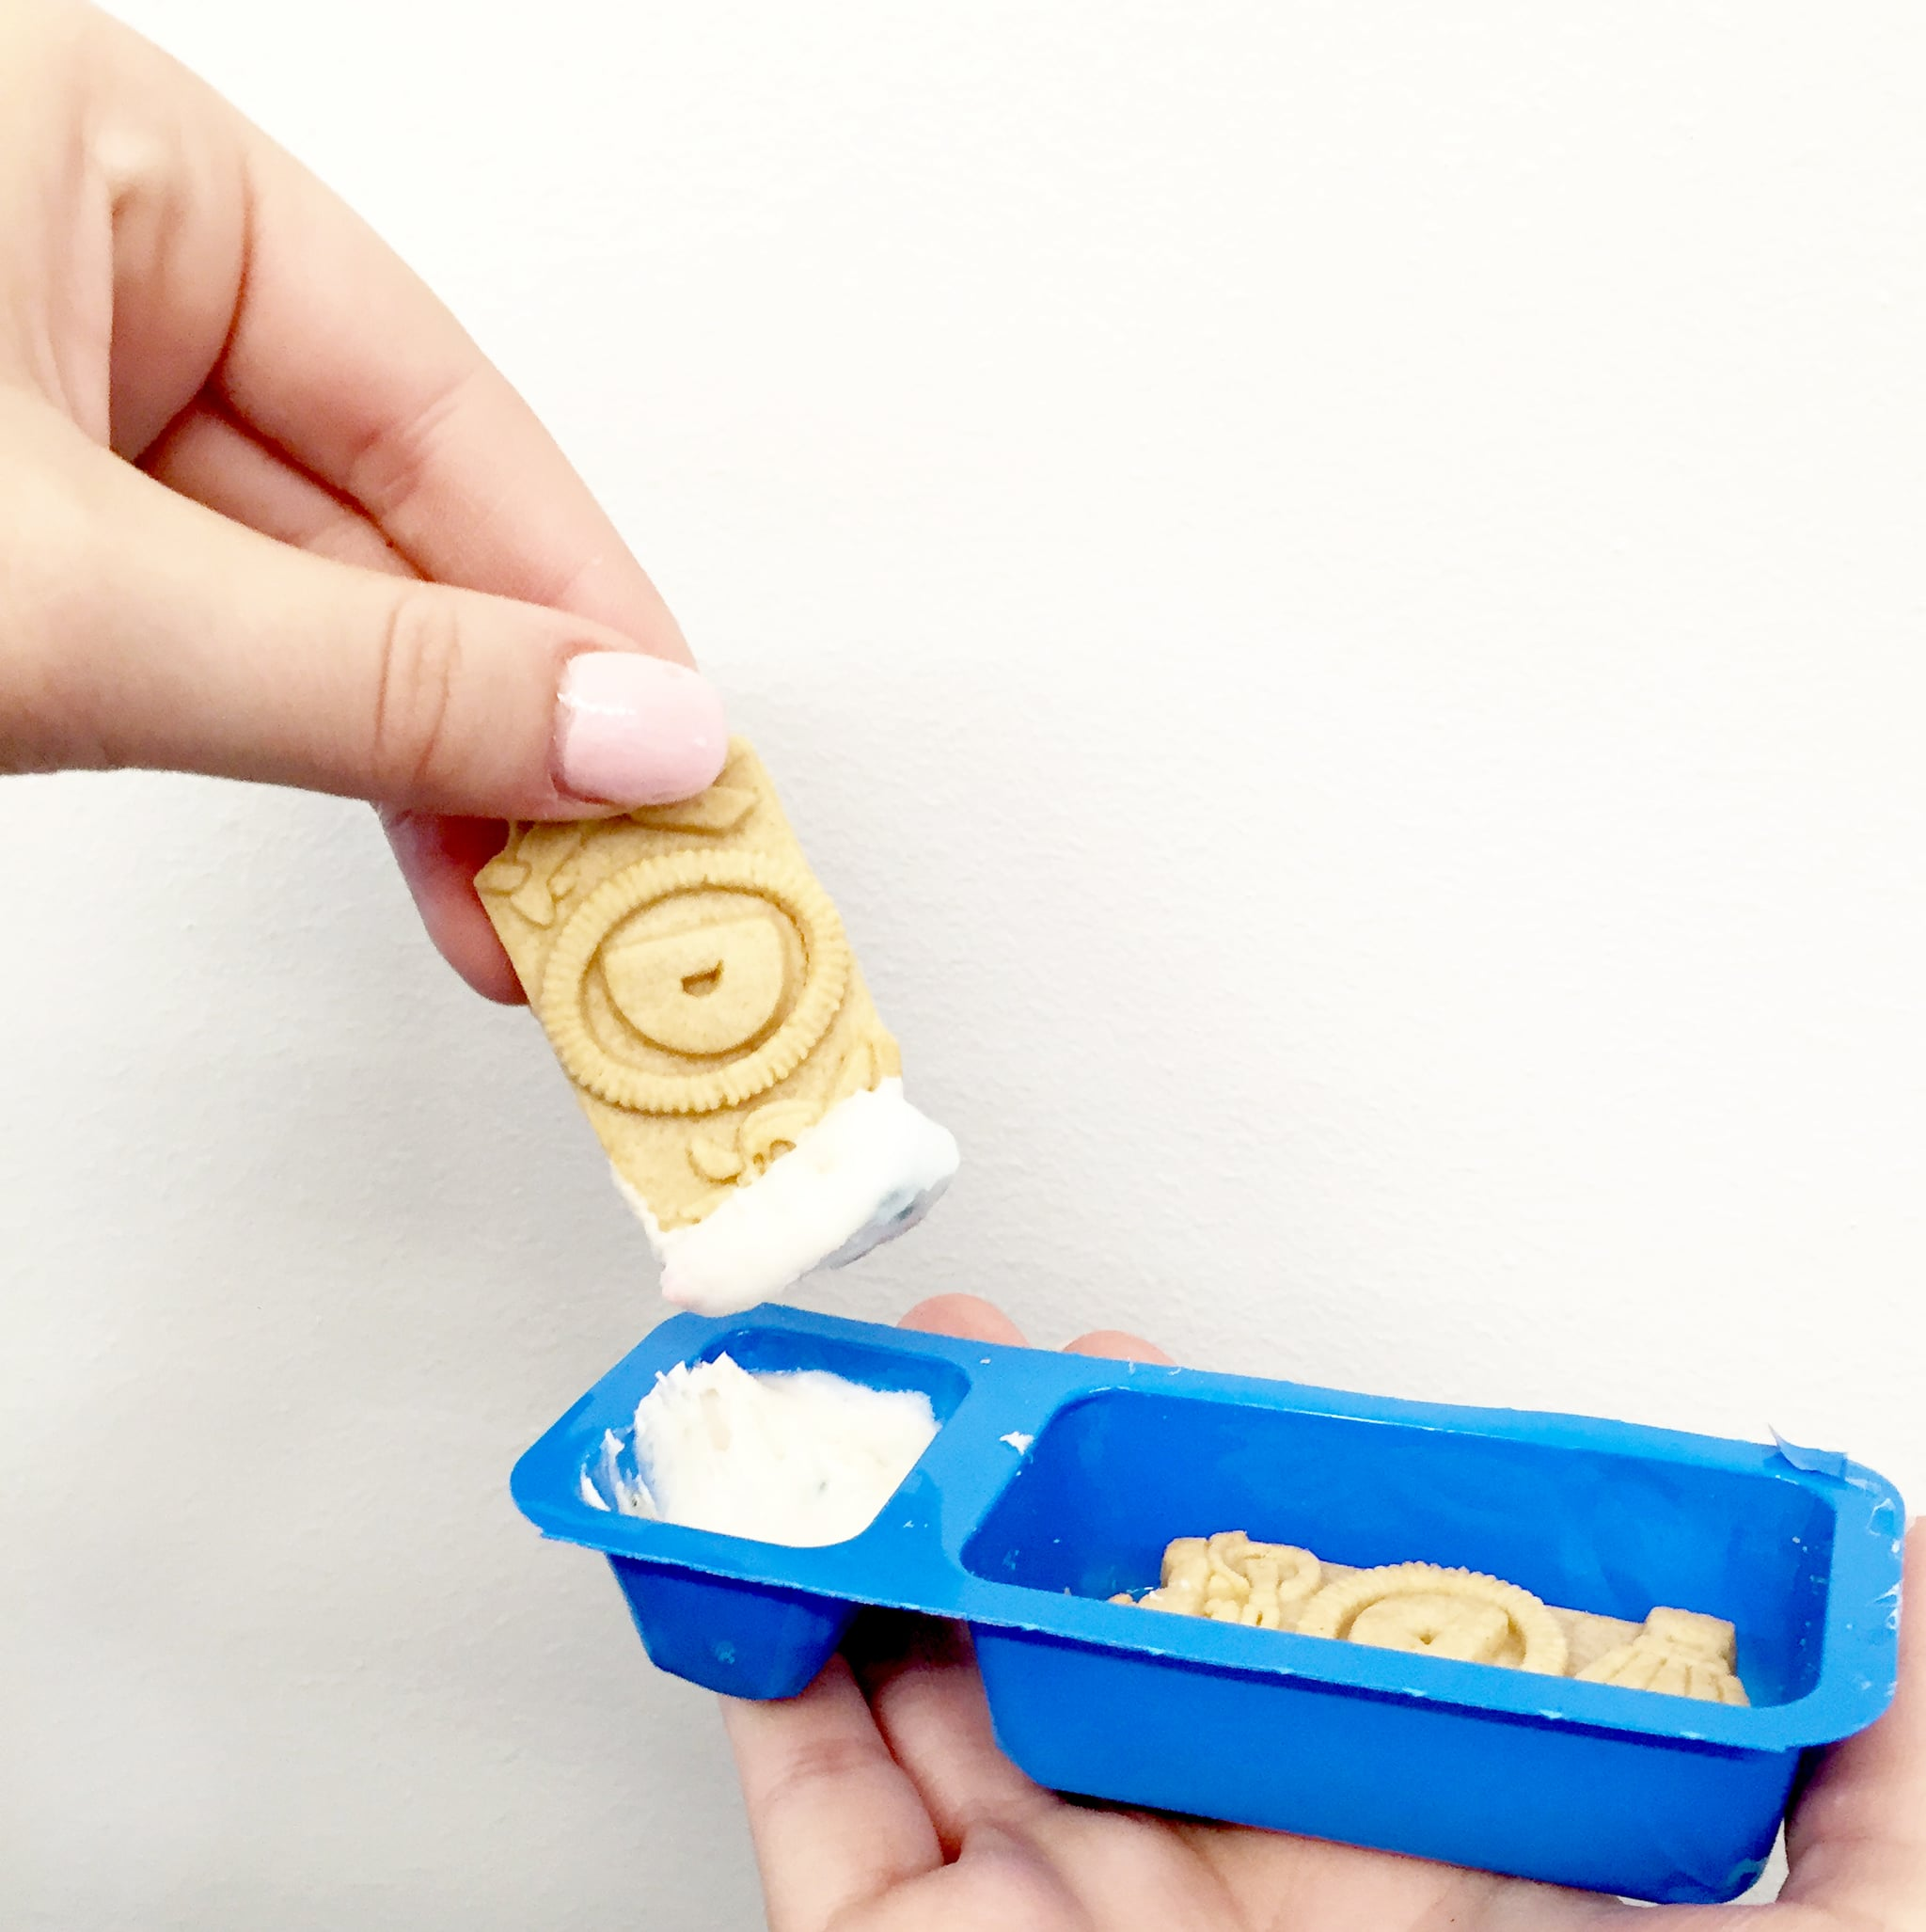 Where can i buy dunkaroos popsugar food the iconic snack individually packaged vanilla cookies with dippable funfetti frosting was discontinued in america in 2012 but its finally making a long izmirmasajfo Choice Image